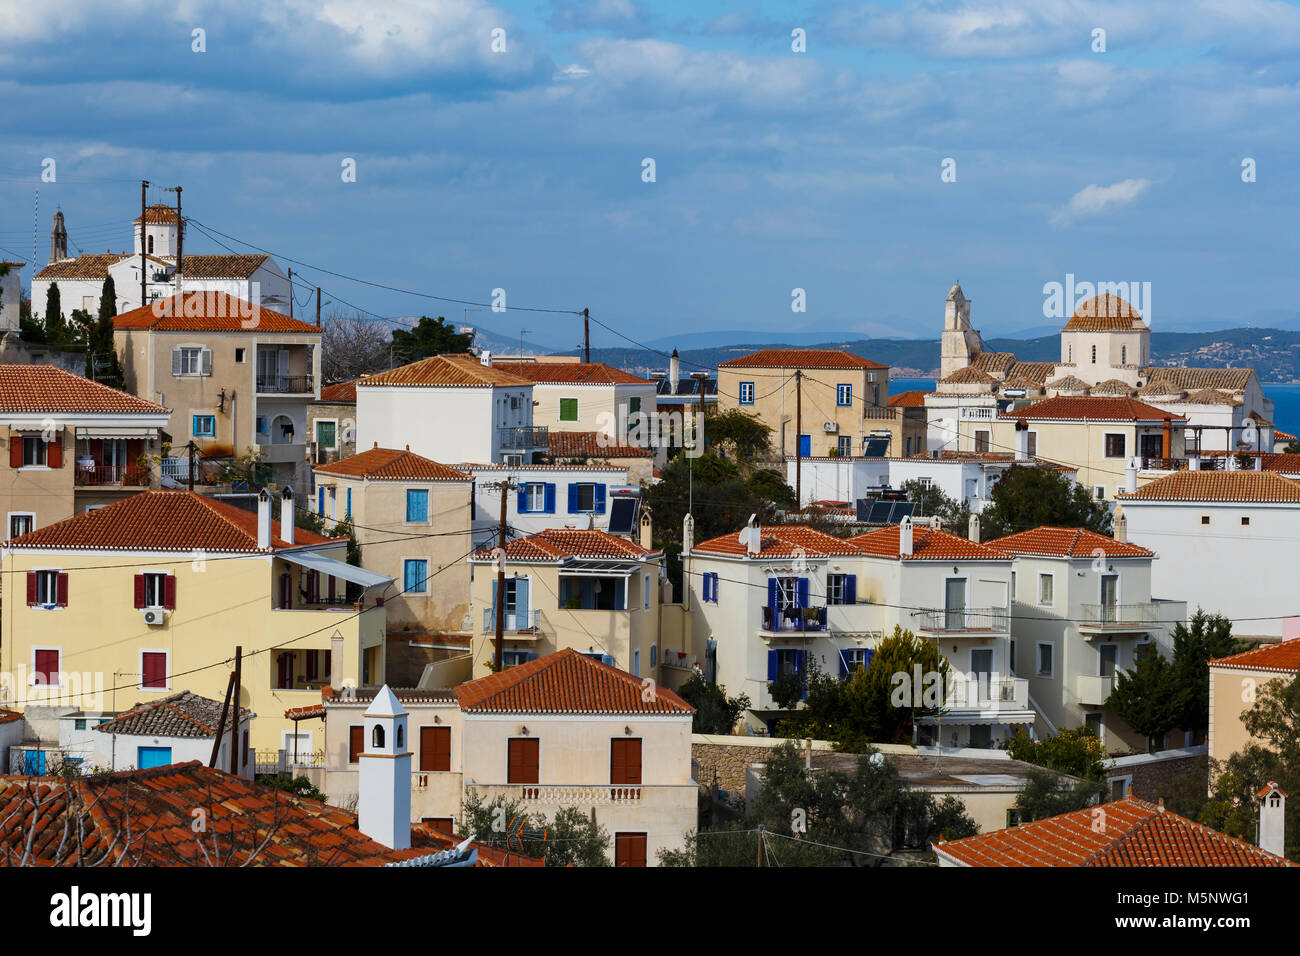 One of the largest churches in Spetses village, Greece. - Stock Image